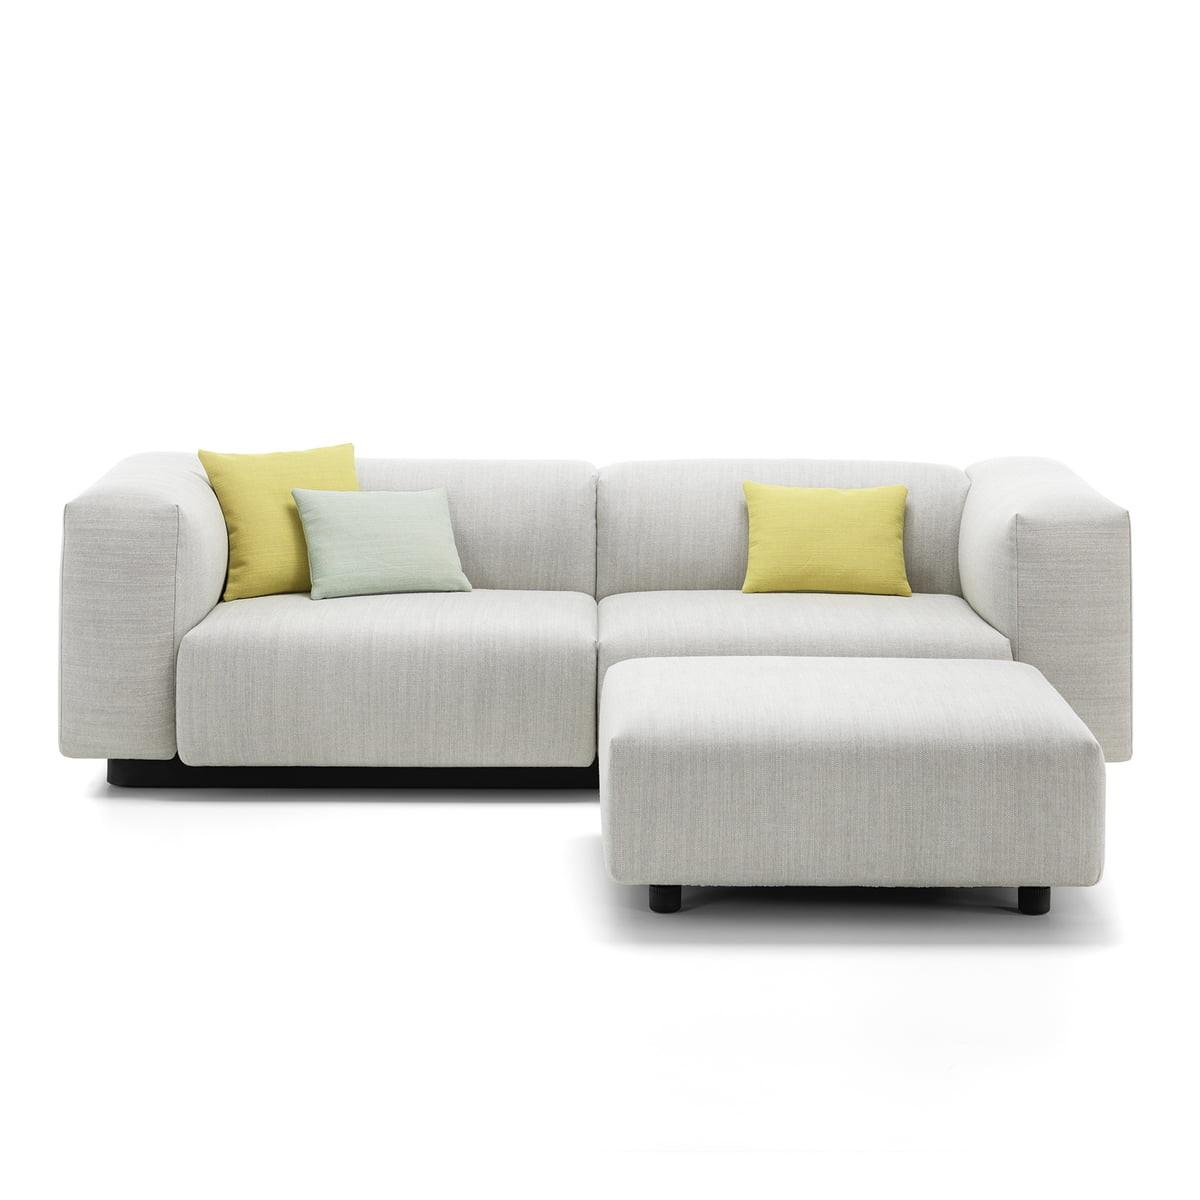 Seater Sofa Chaise Furniture Sectionals